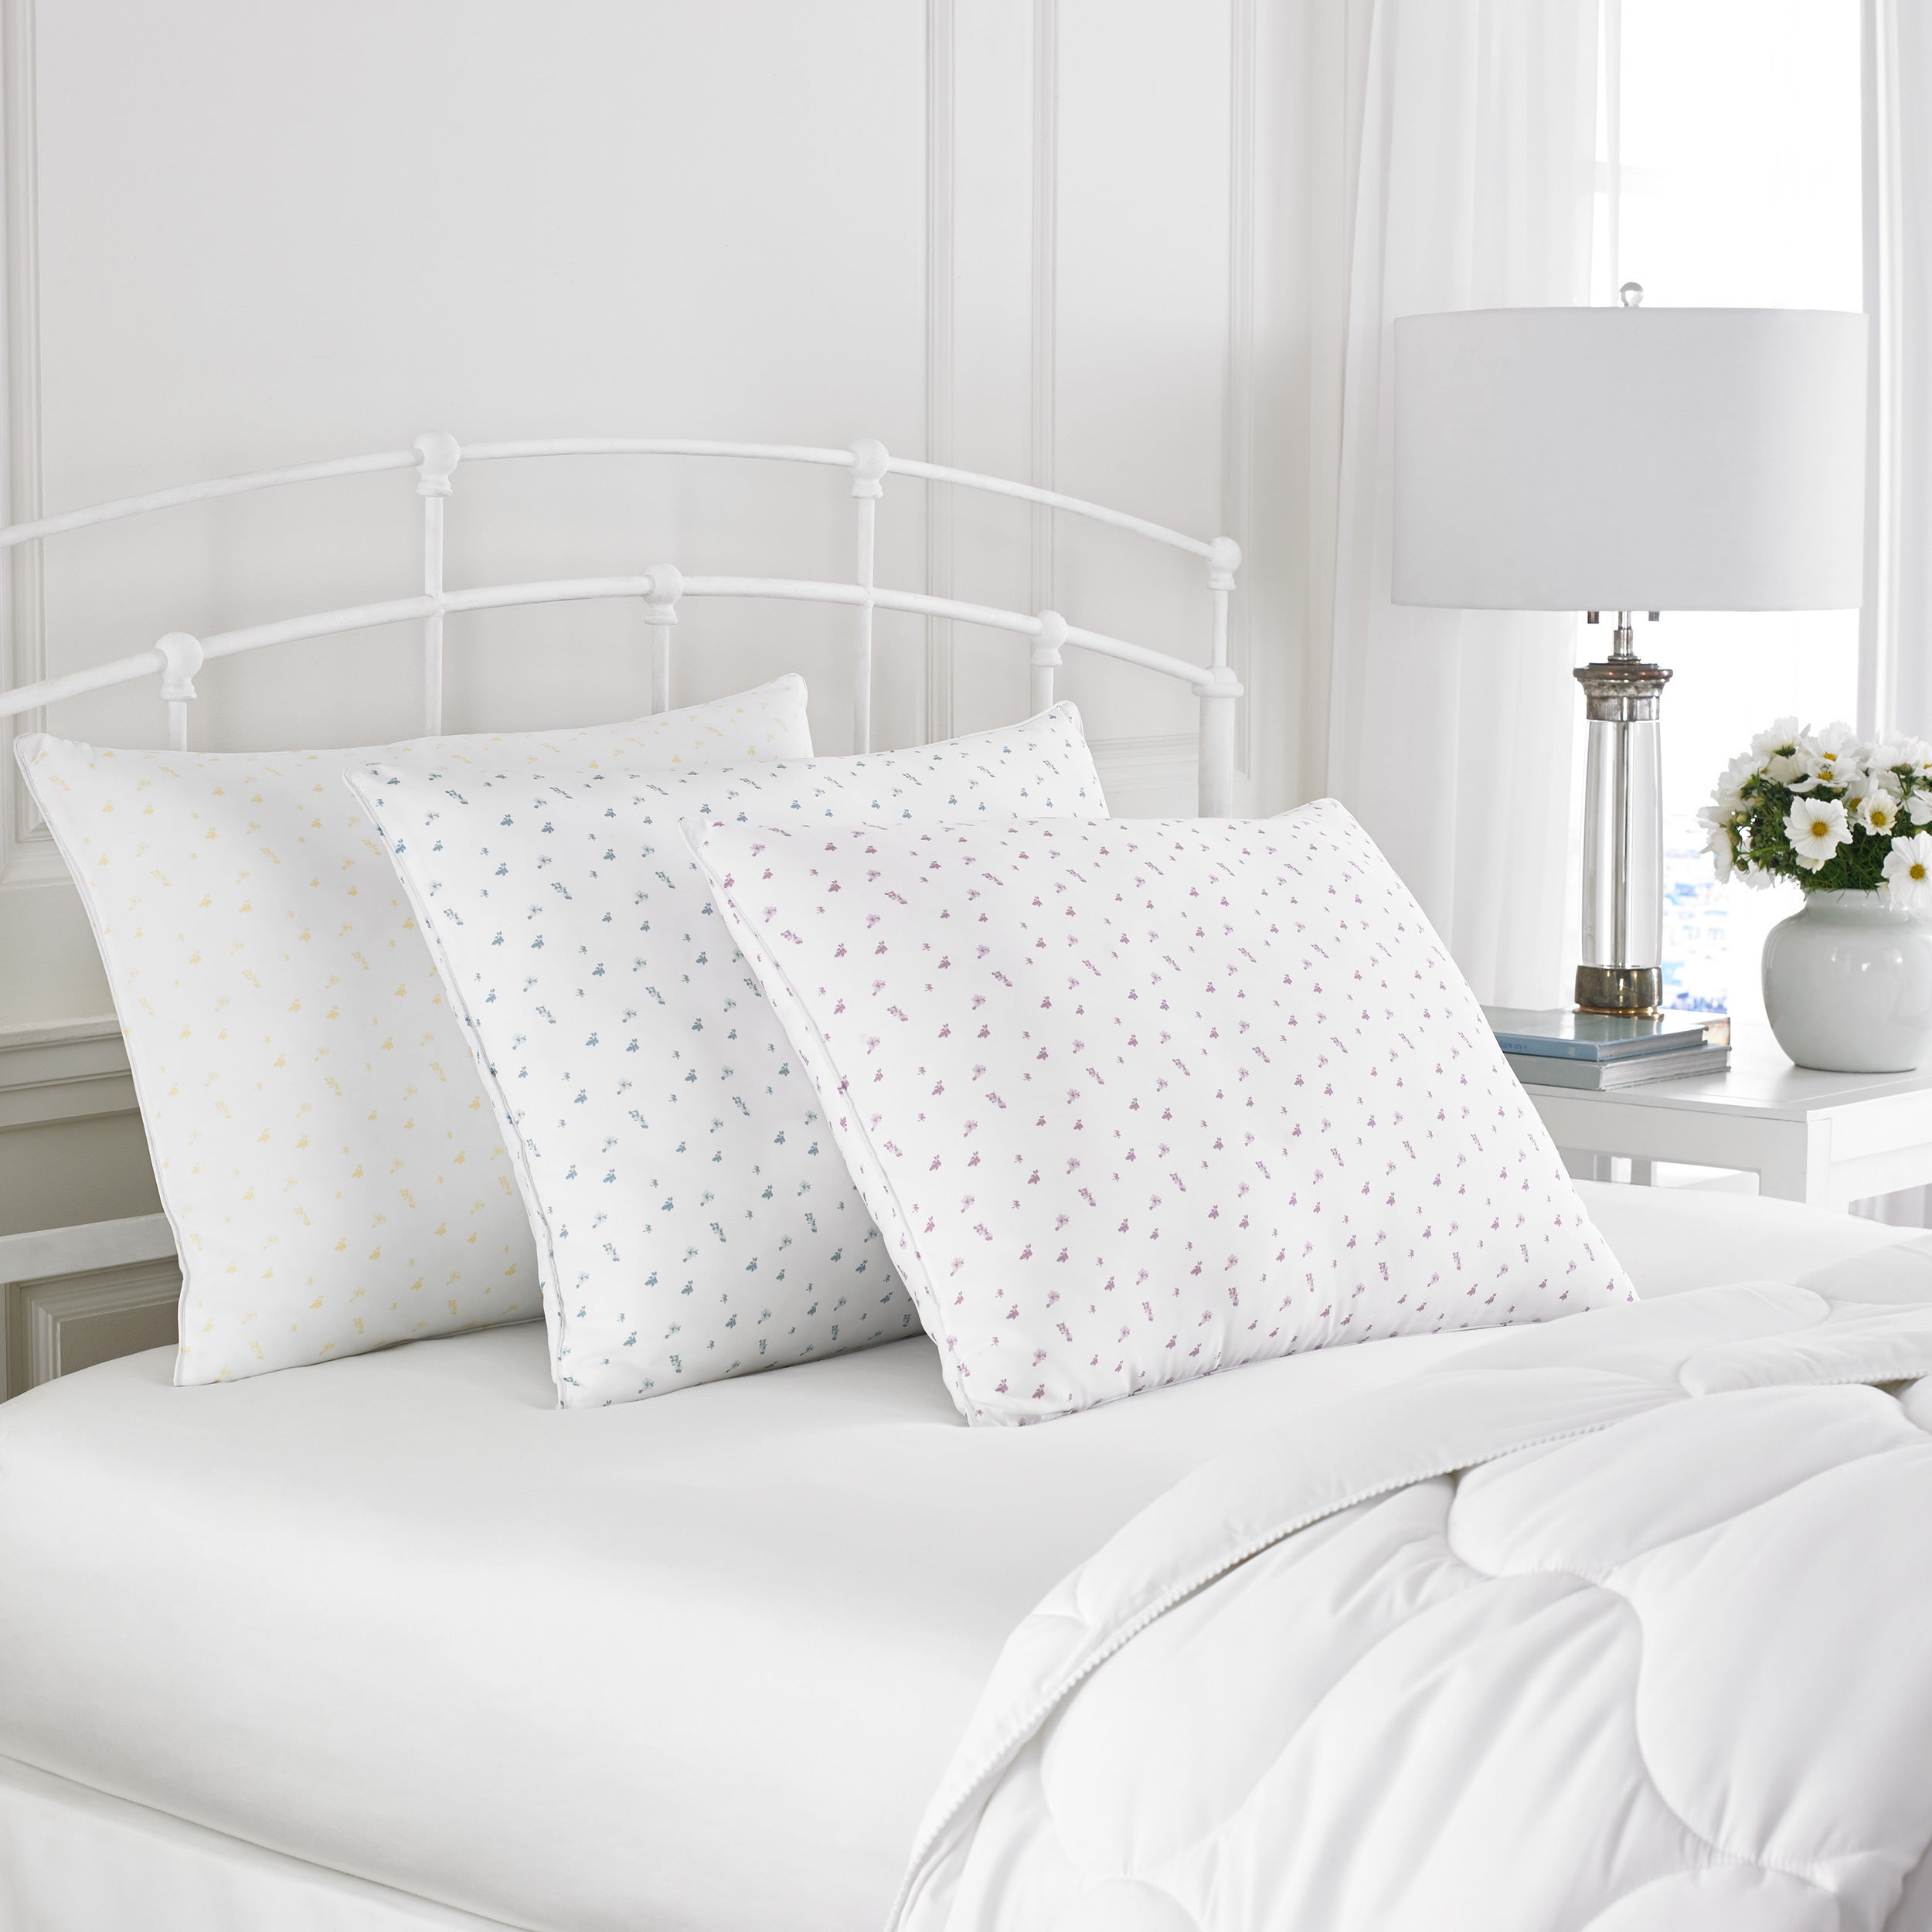 the eco woolly organic to products or of img view cotton copy shown natural height down our on bed a fullness wool puffs pillow